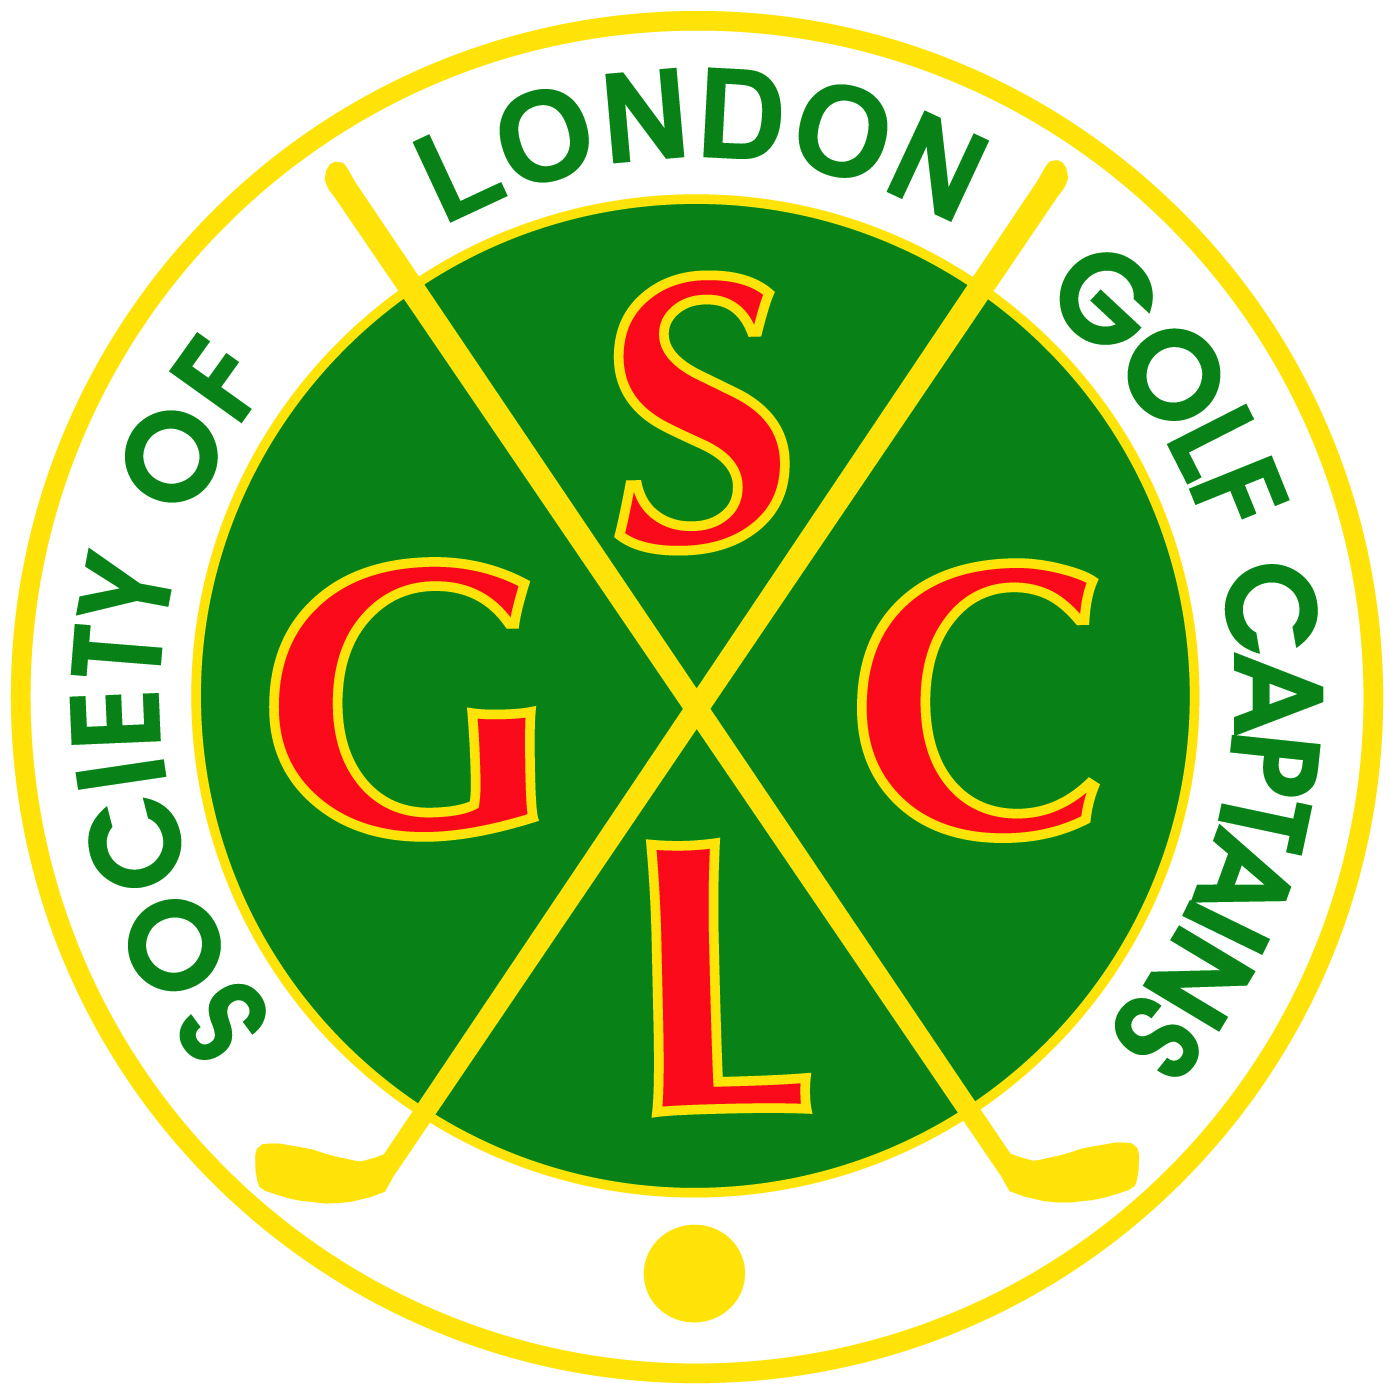 Society of London Golf Captains